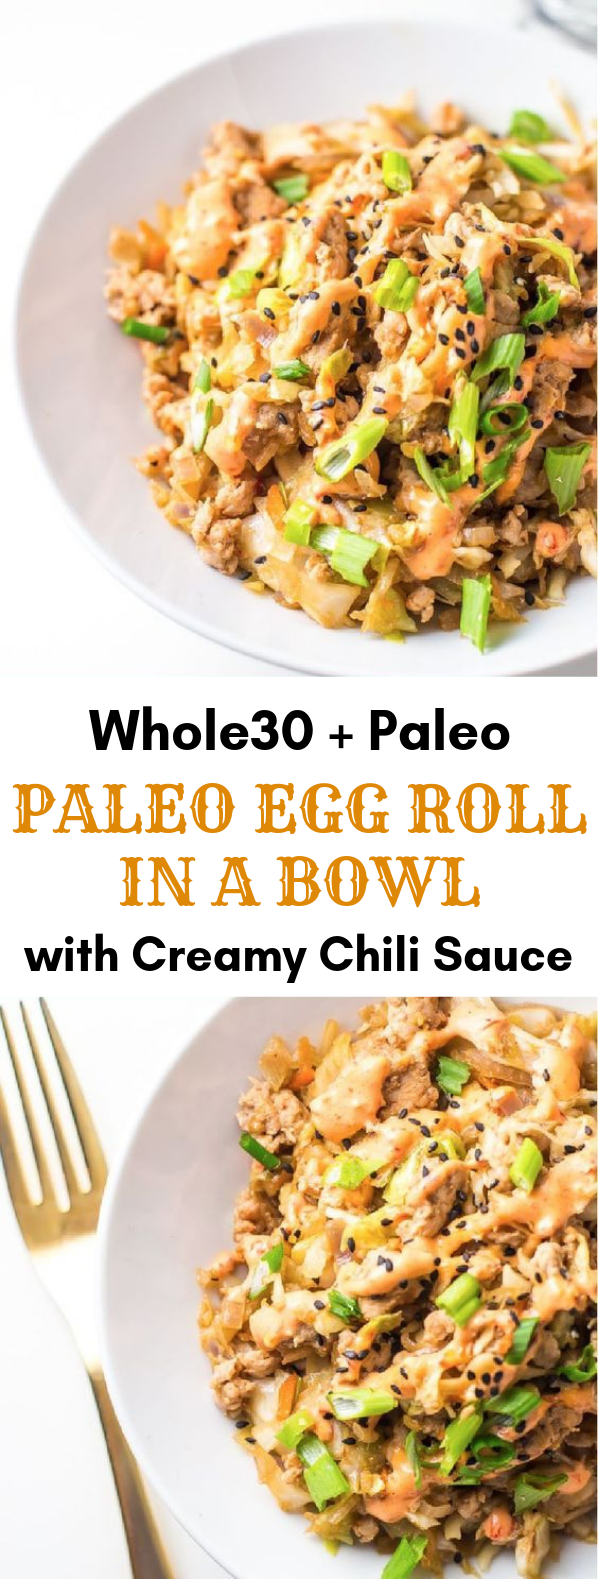 Egg Roll in a Bowl with Creamy Chili Sauce (Whole30, Paleo) #HealthyFood #lowcarb